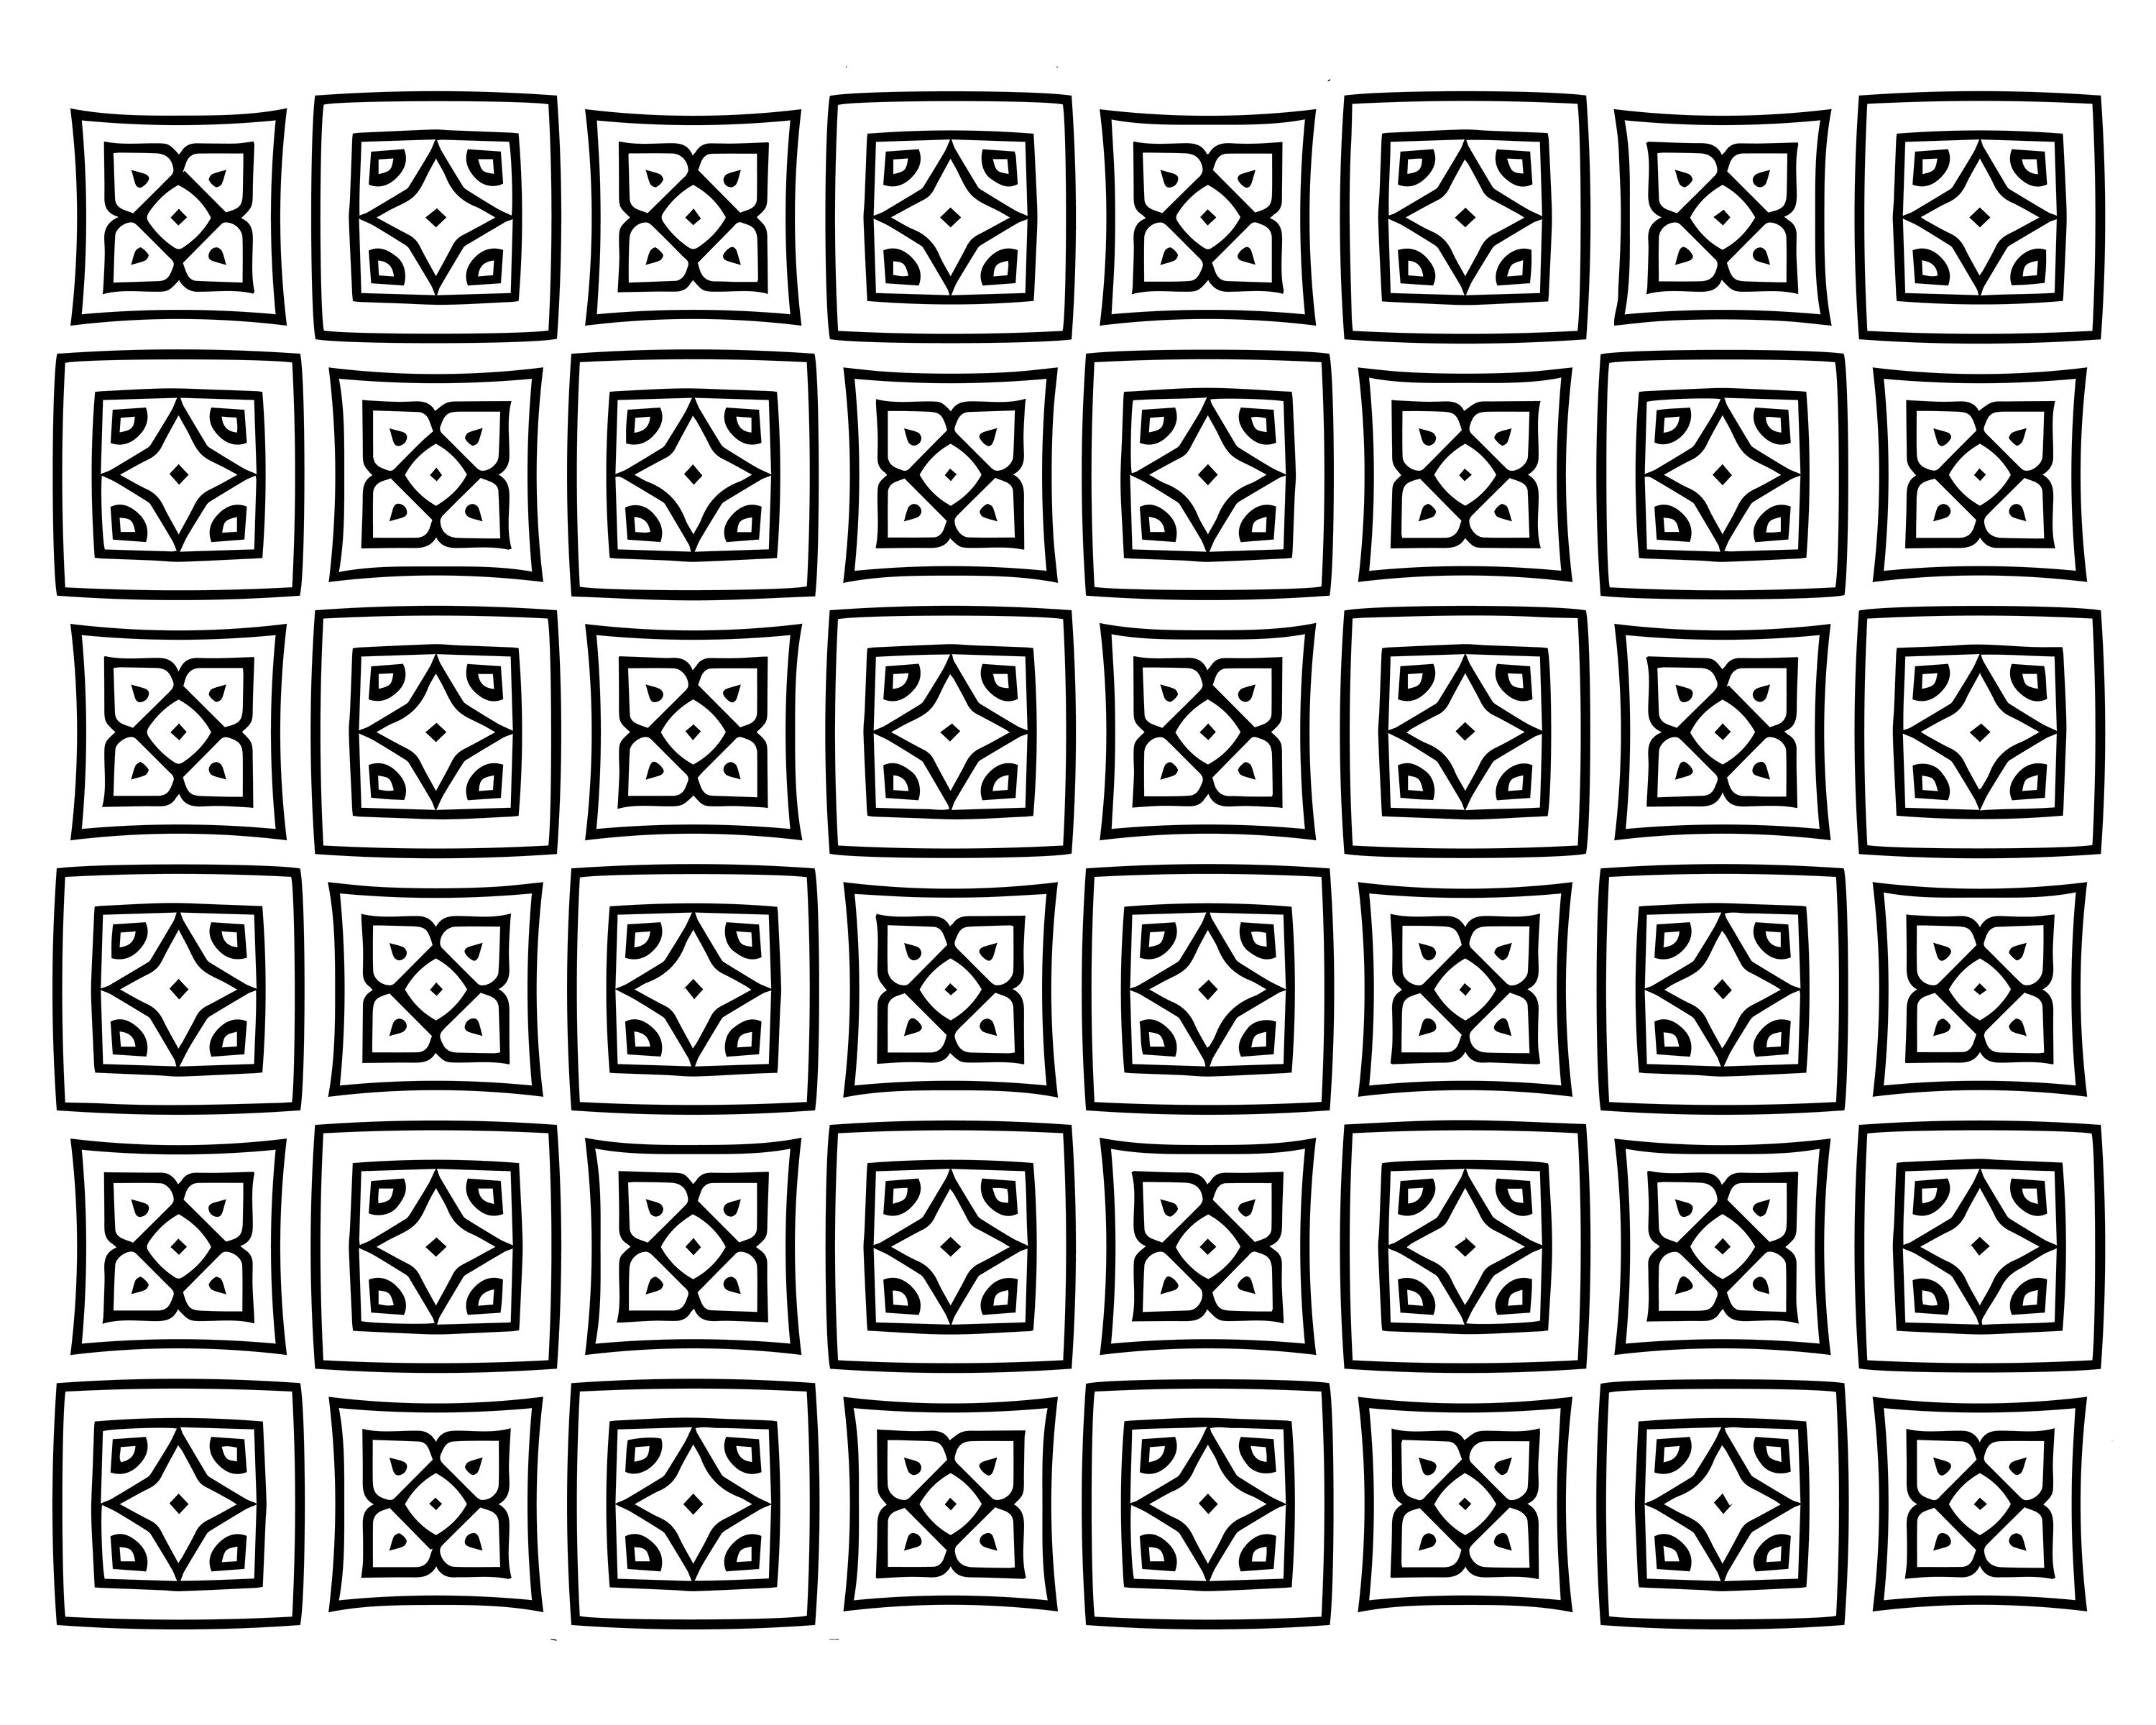 free square quilt pattern adult coloring page - Quilt Block Coloring Pages